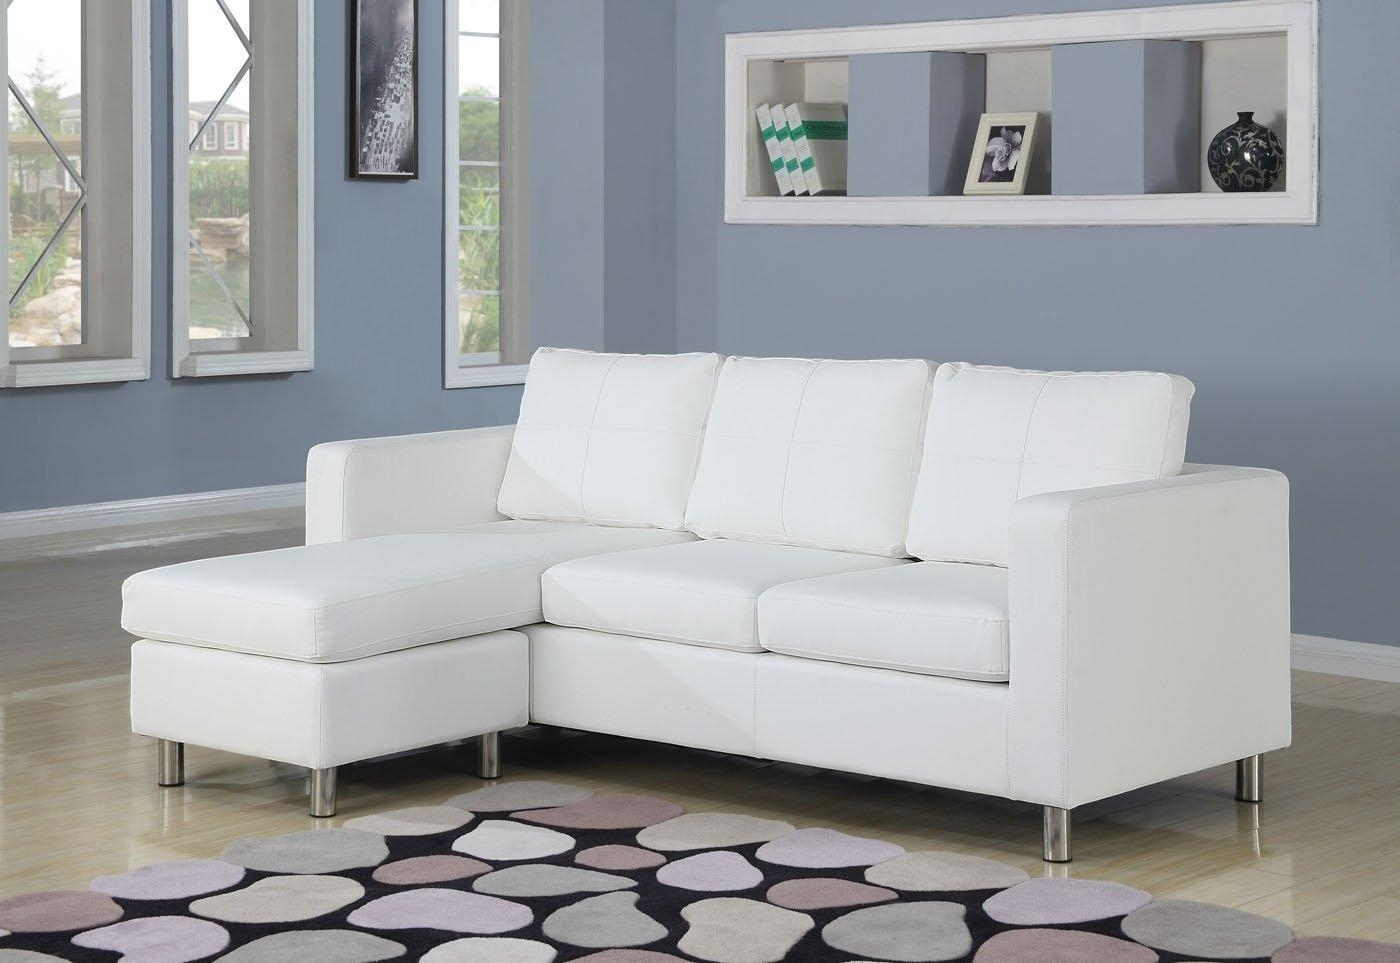 Modern Small Scale Sectional Sofa Modern Small Scale Sectional In Modern Small Sectional Sofas (View 13 of 20)